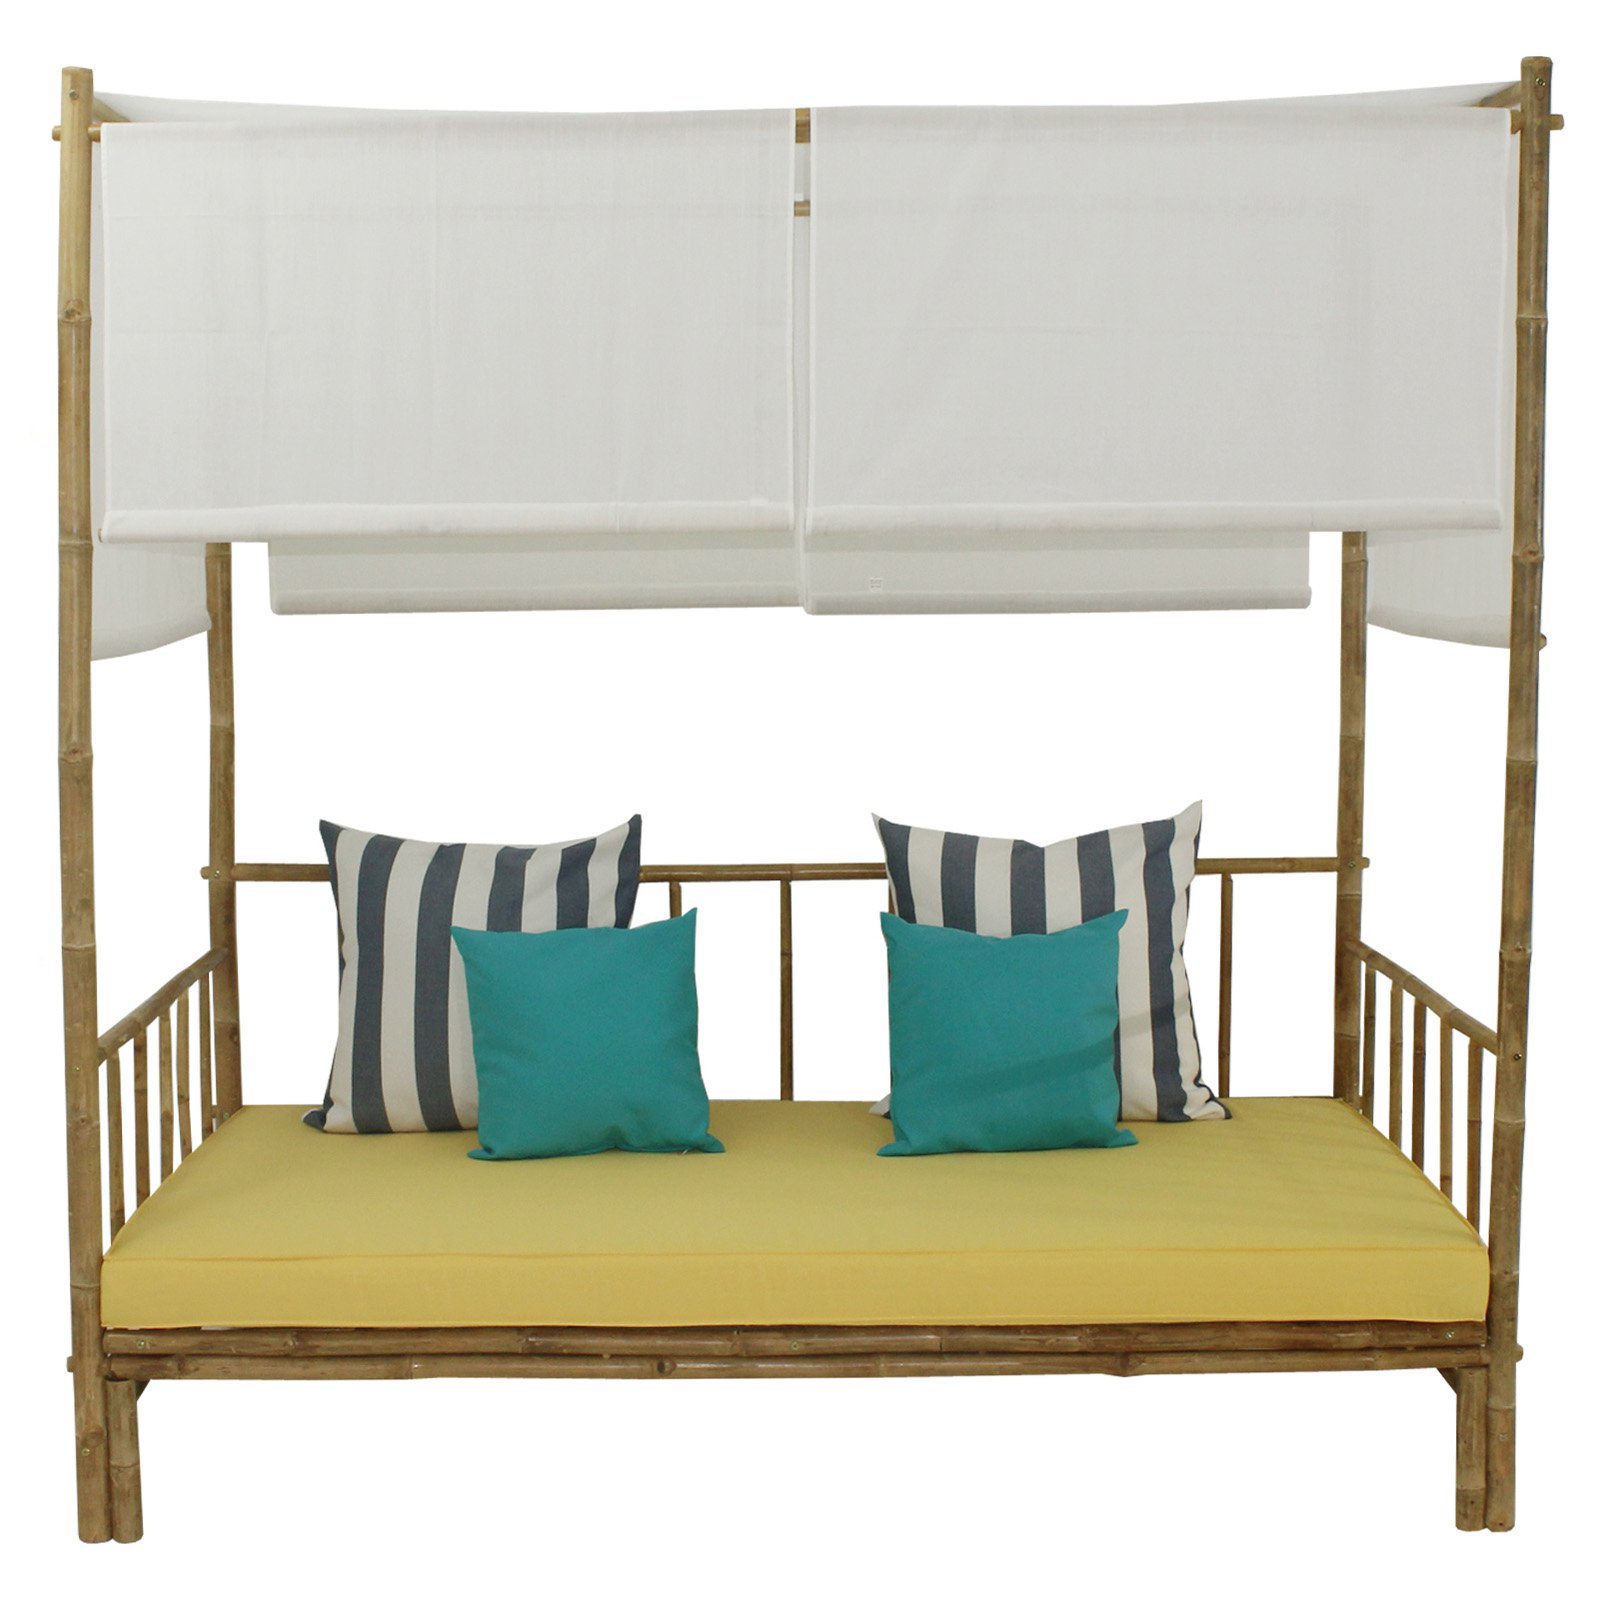 Current Statra Bamboo Daybed With Canopy Mattress And Throw Pillows For Bamboo Daybeds With Canopy (View 8 of 25)